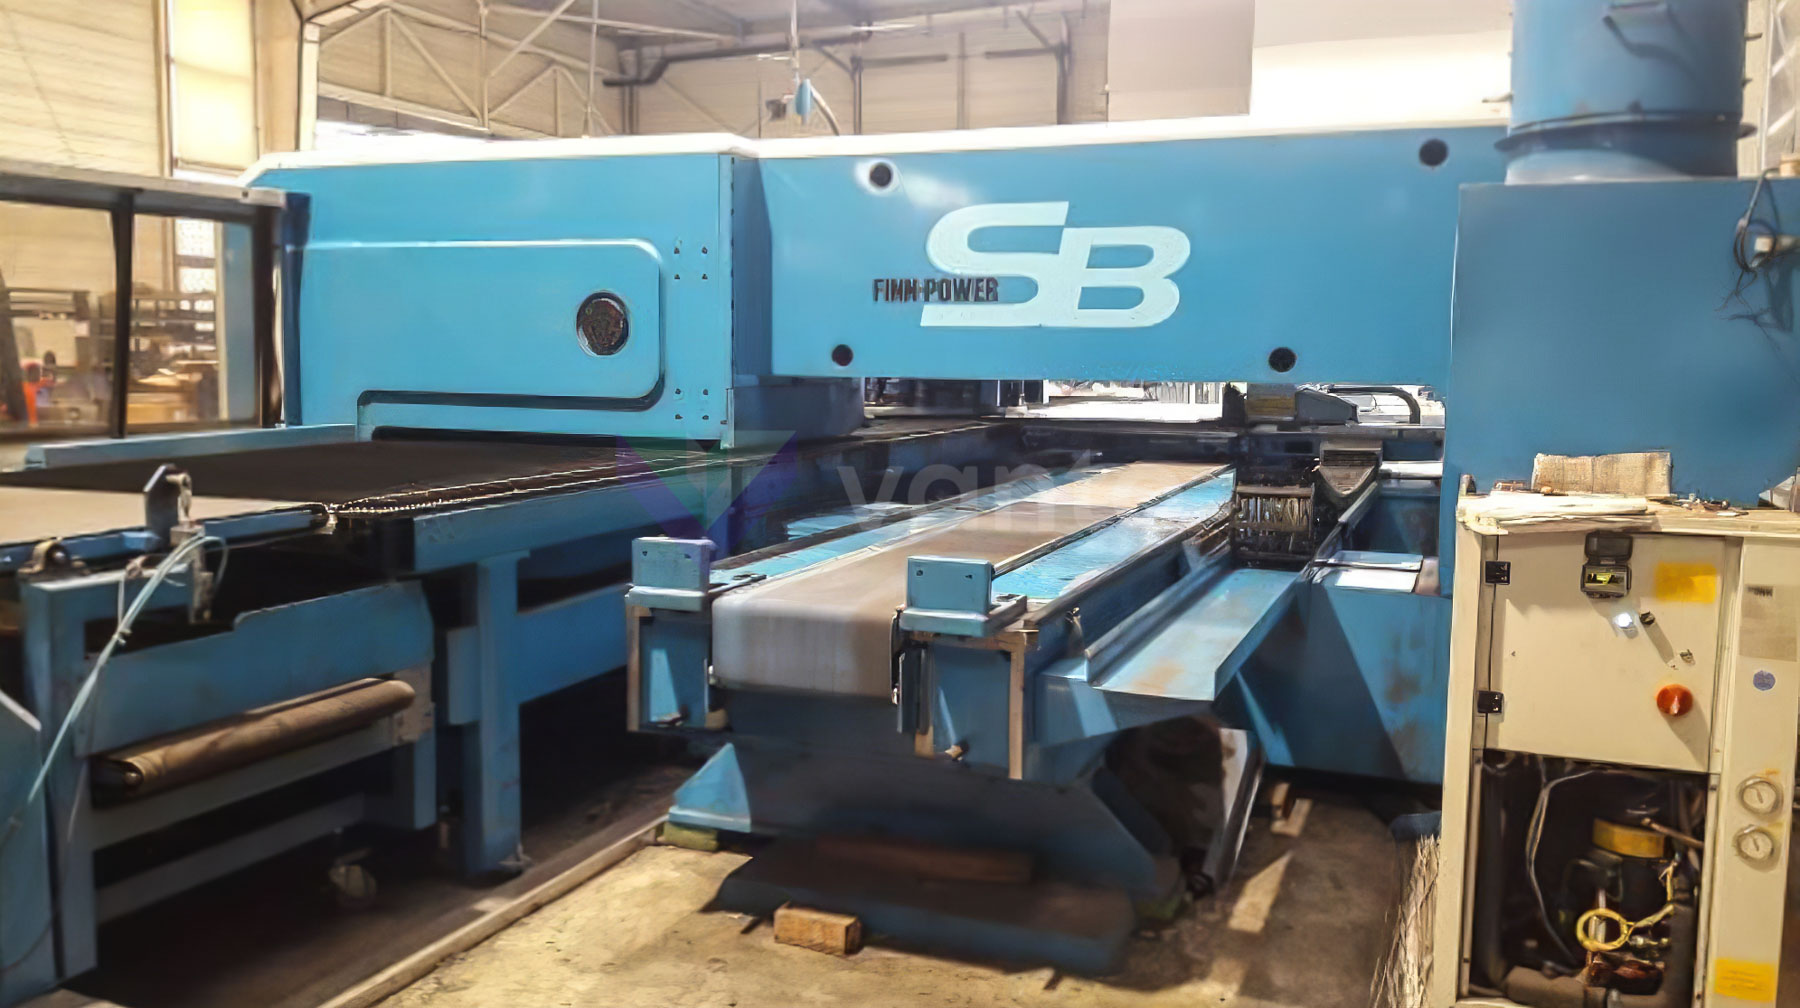 Punzonadora CNC FINN POWER Shear Brilliance SB6 (2002) id10446